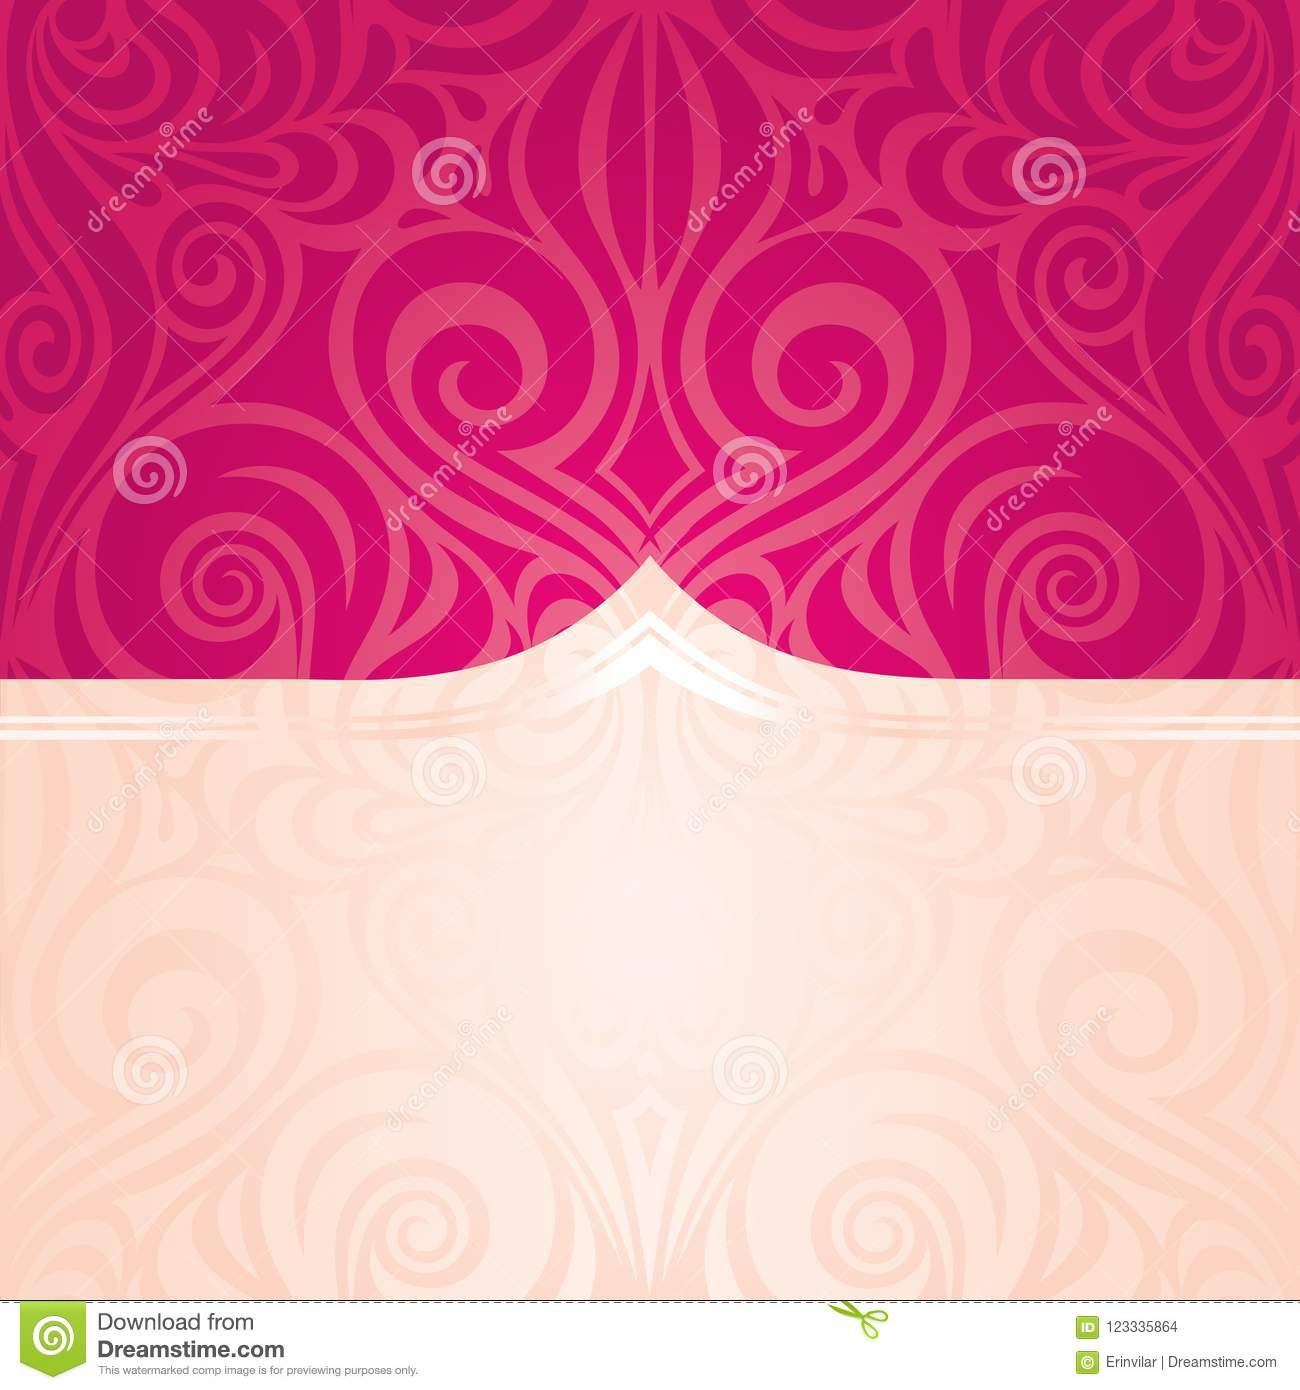 Red Floral Vector Pattern Wallpaper Wedding Background Trendy Fashion Mandala Design With Copy Space